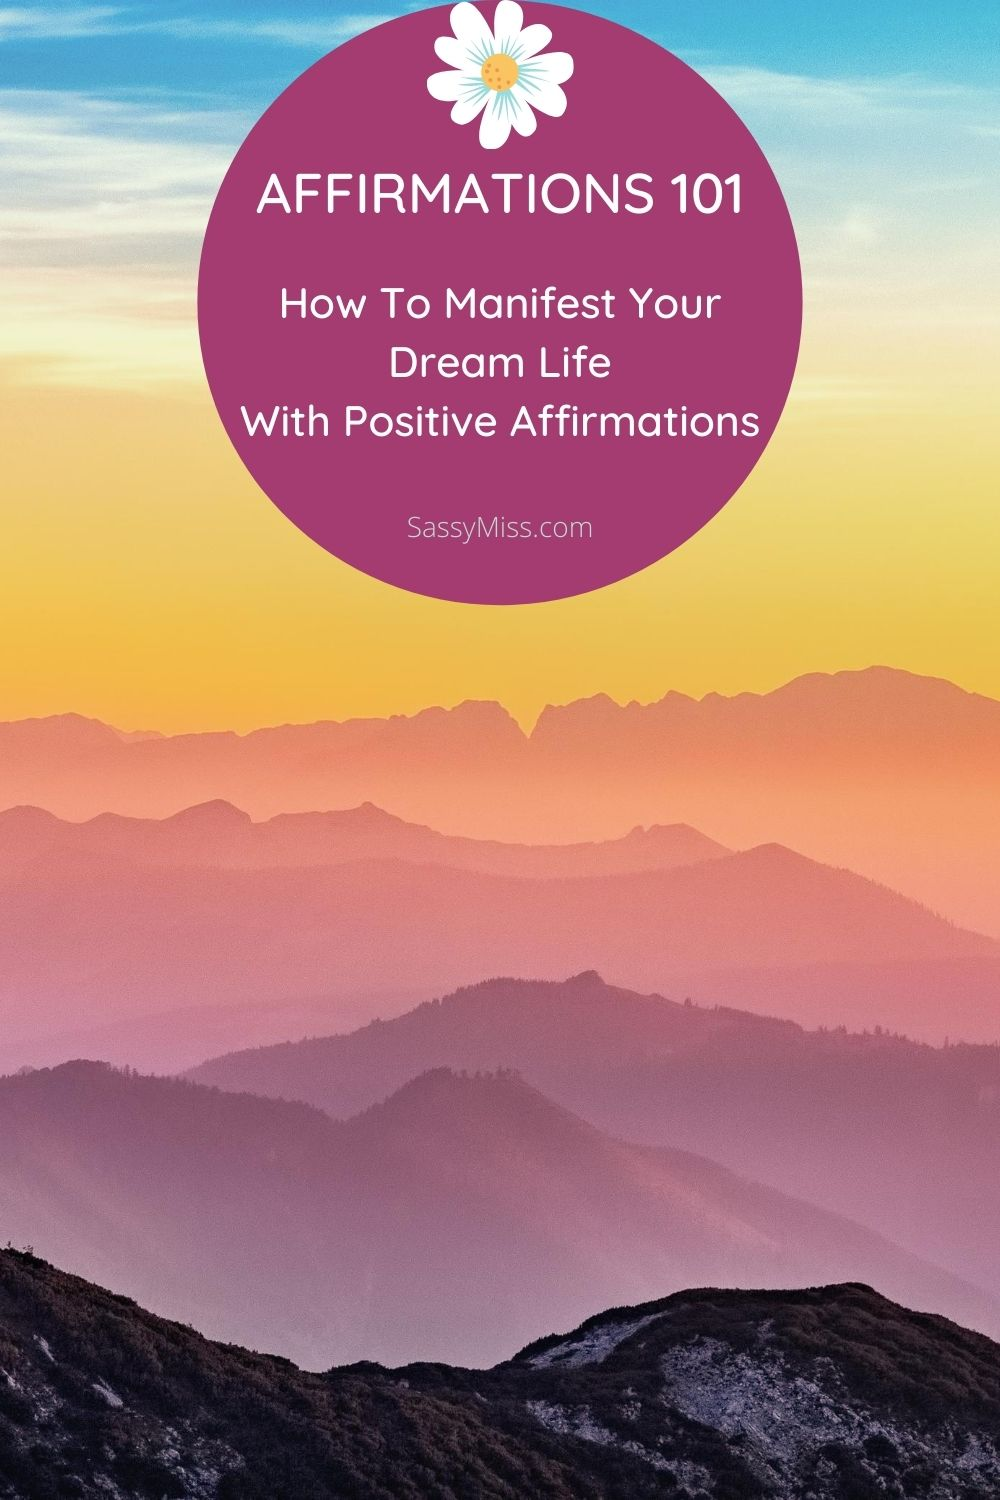 Affirmations 101 - Manifest Your Dream Life with The Law Of Attraction